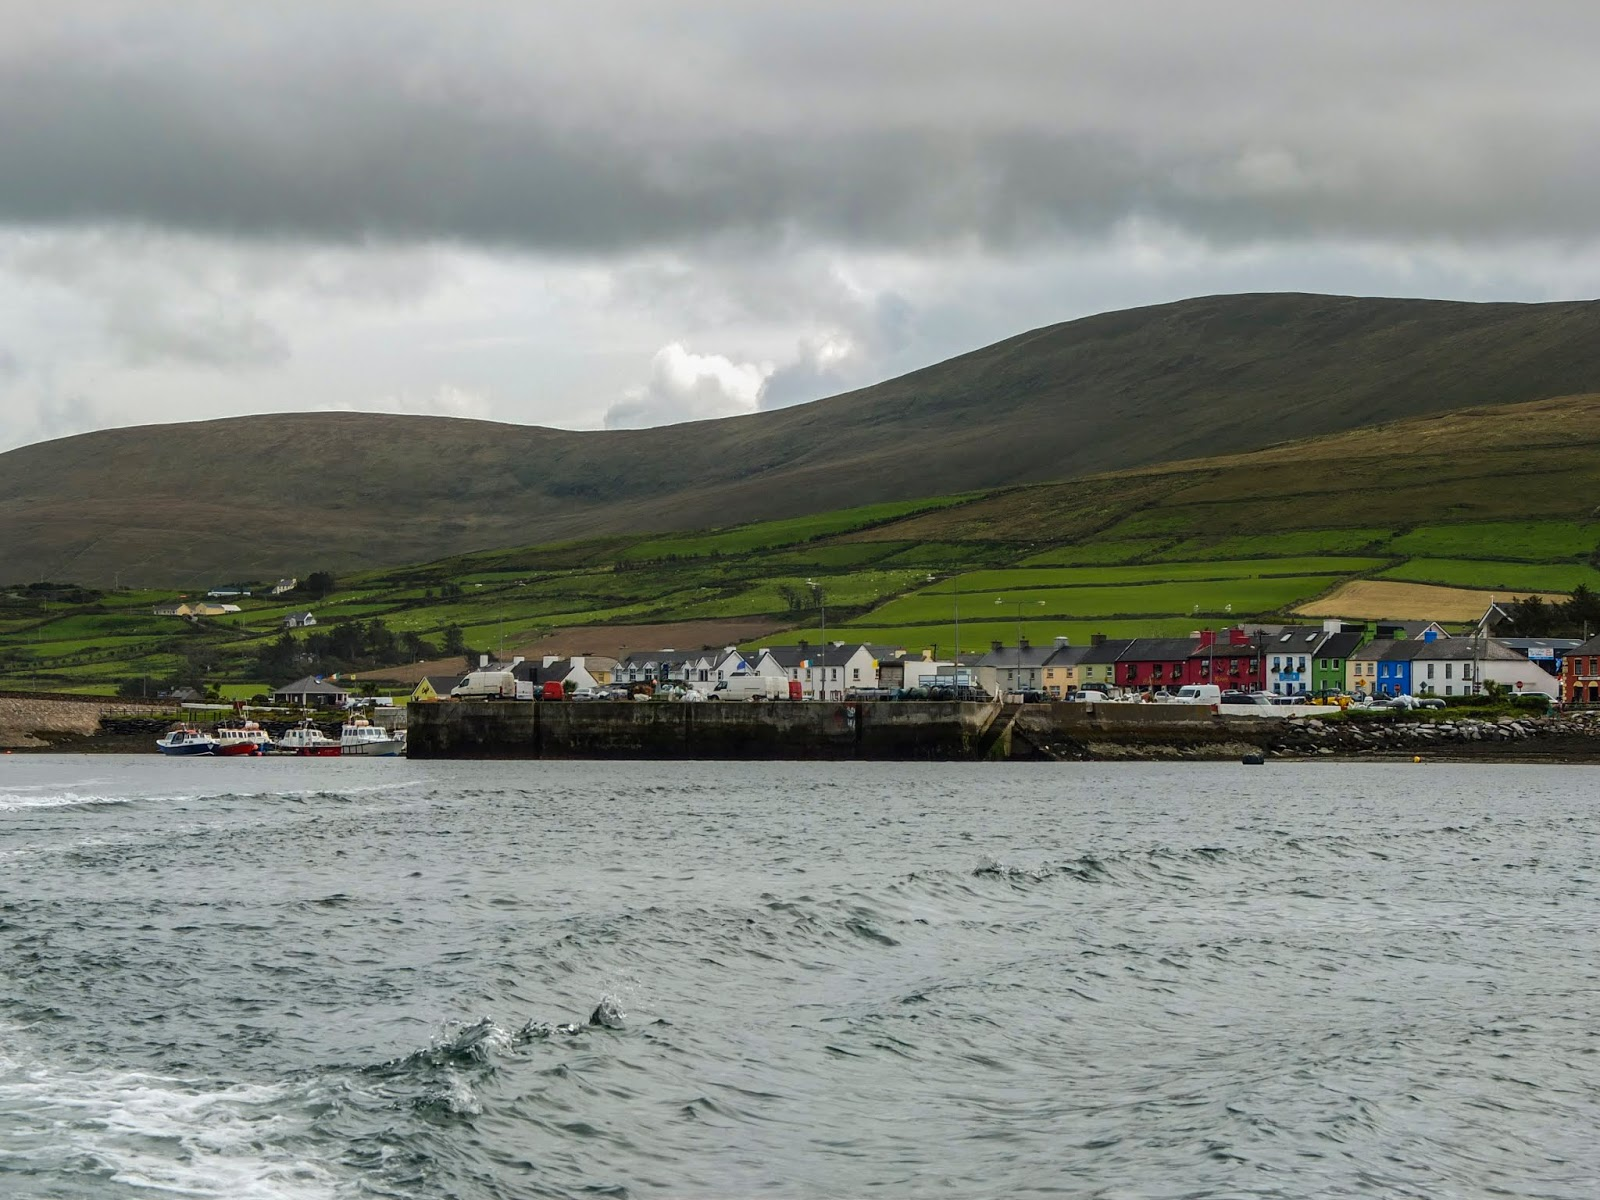 Leaving the harbour and looking back at Portmagee, Co.Kerry from the water.